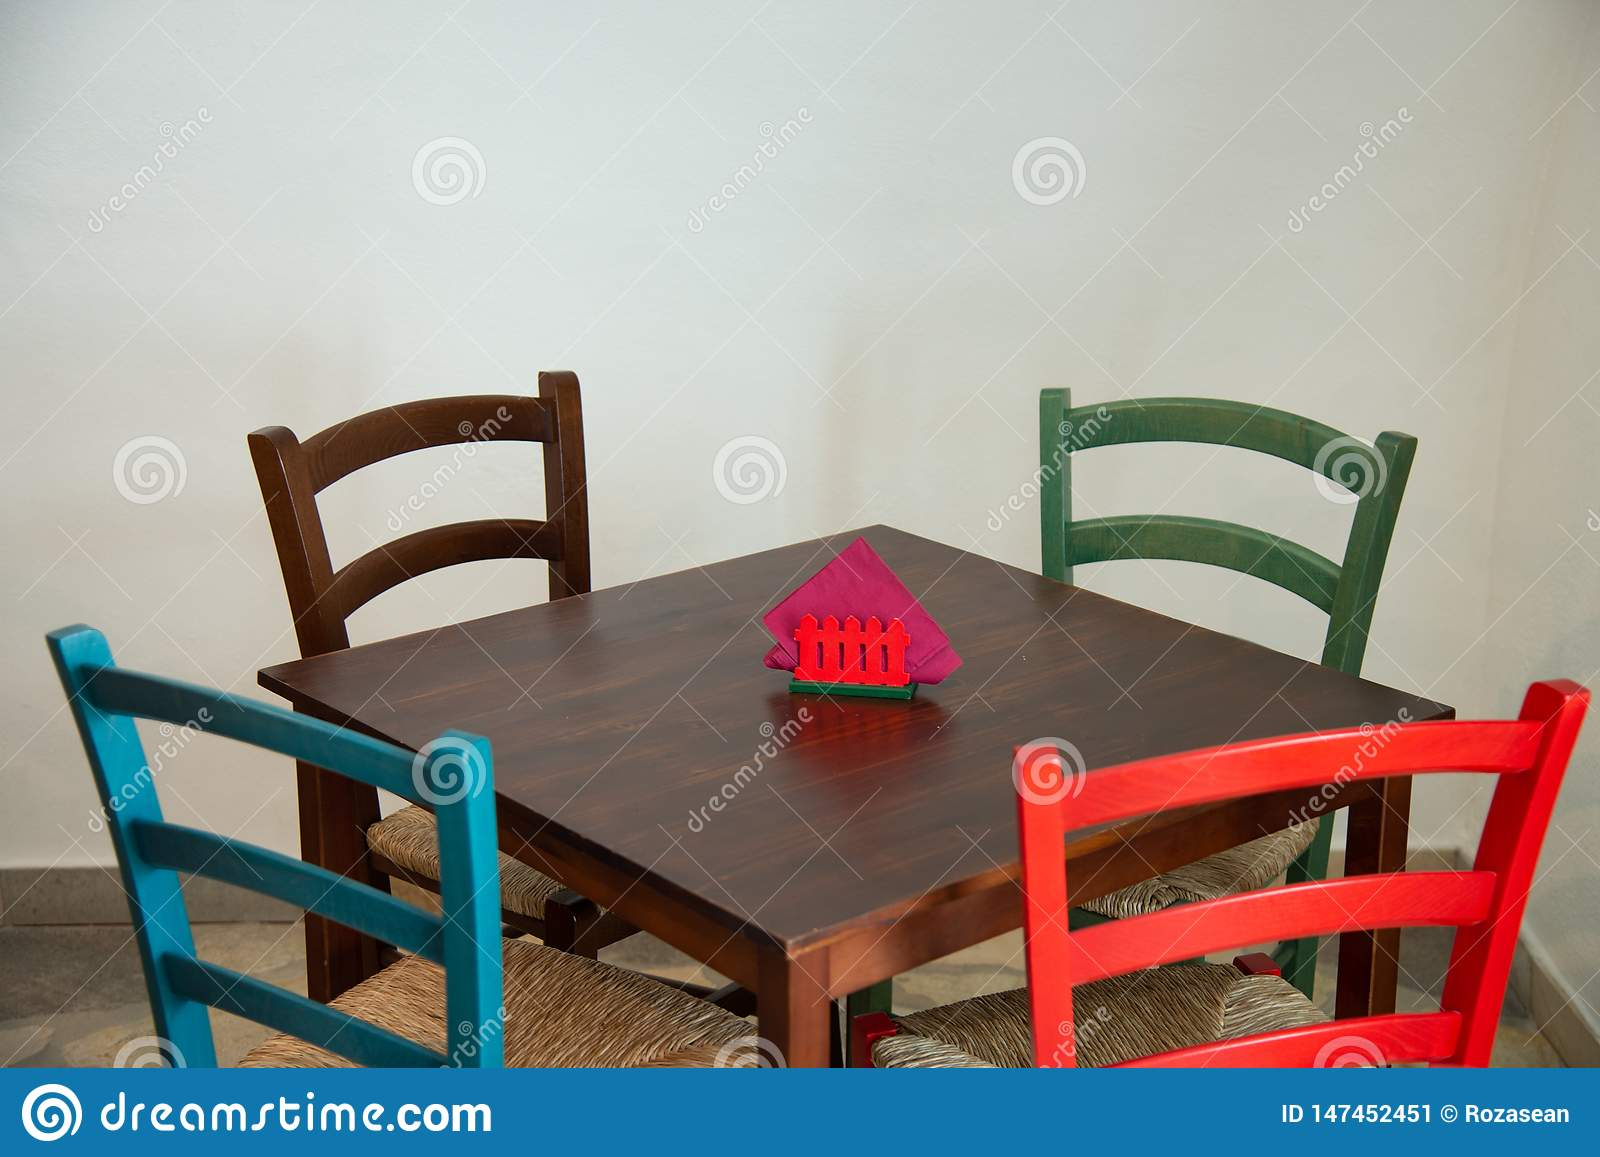 Wooden Table With Colorful Chairs In A Restaurant Stock